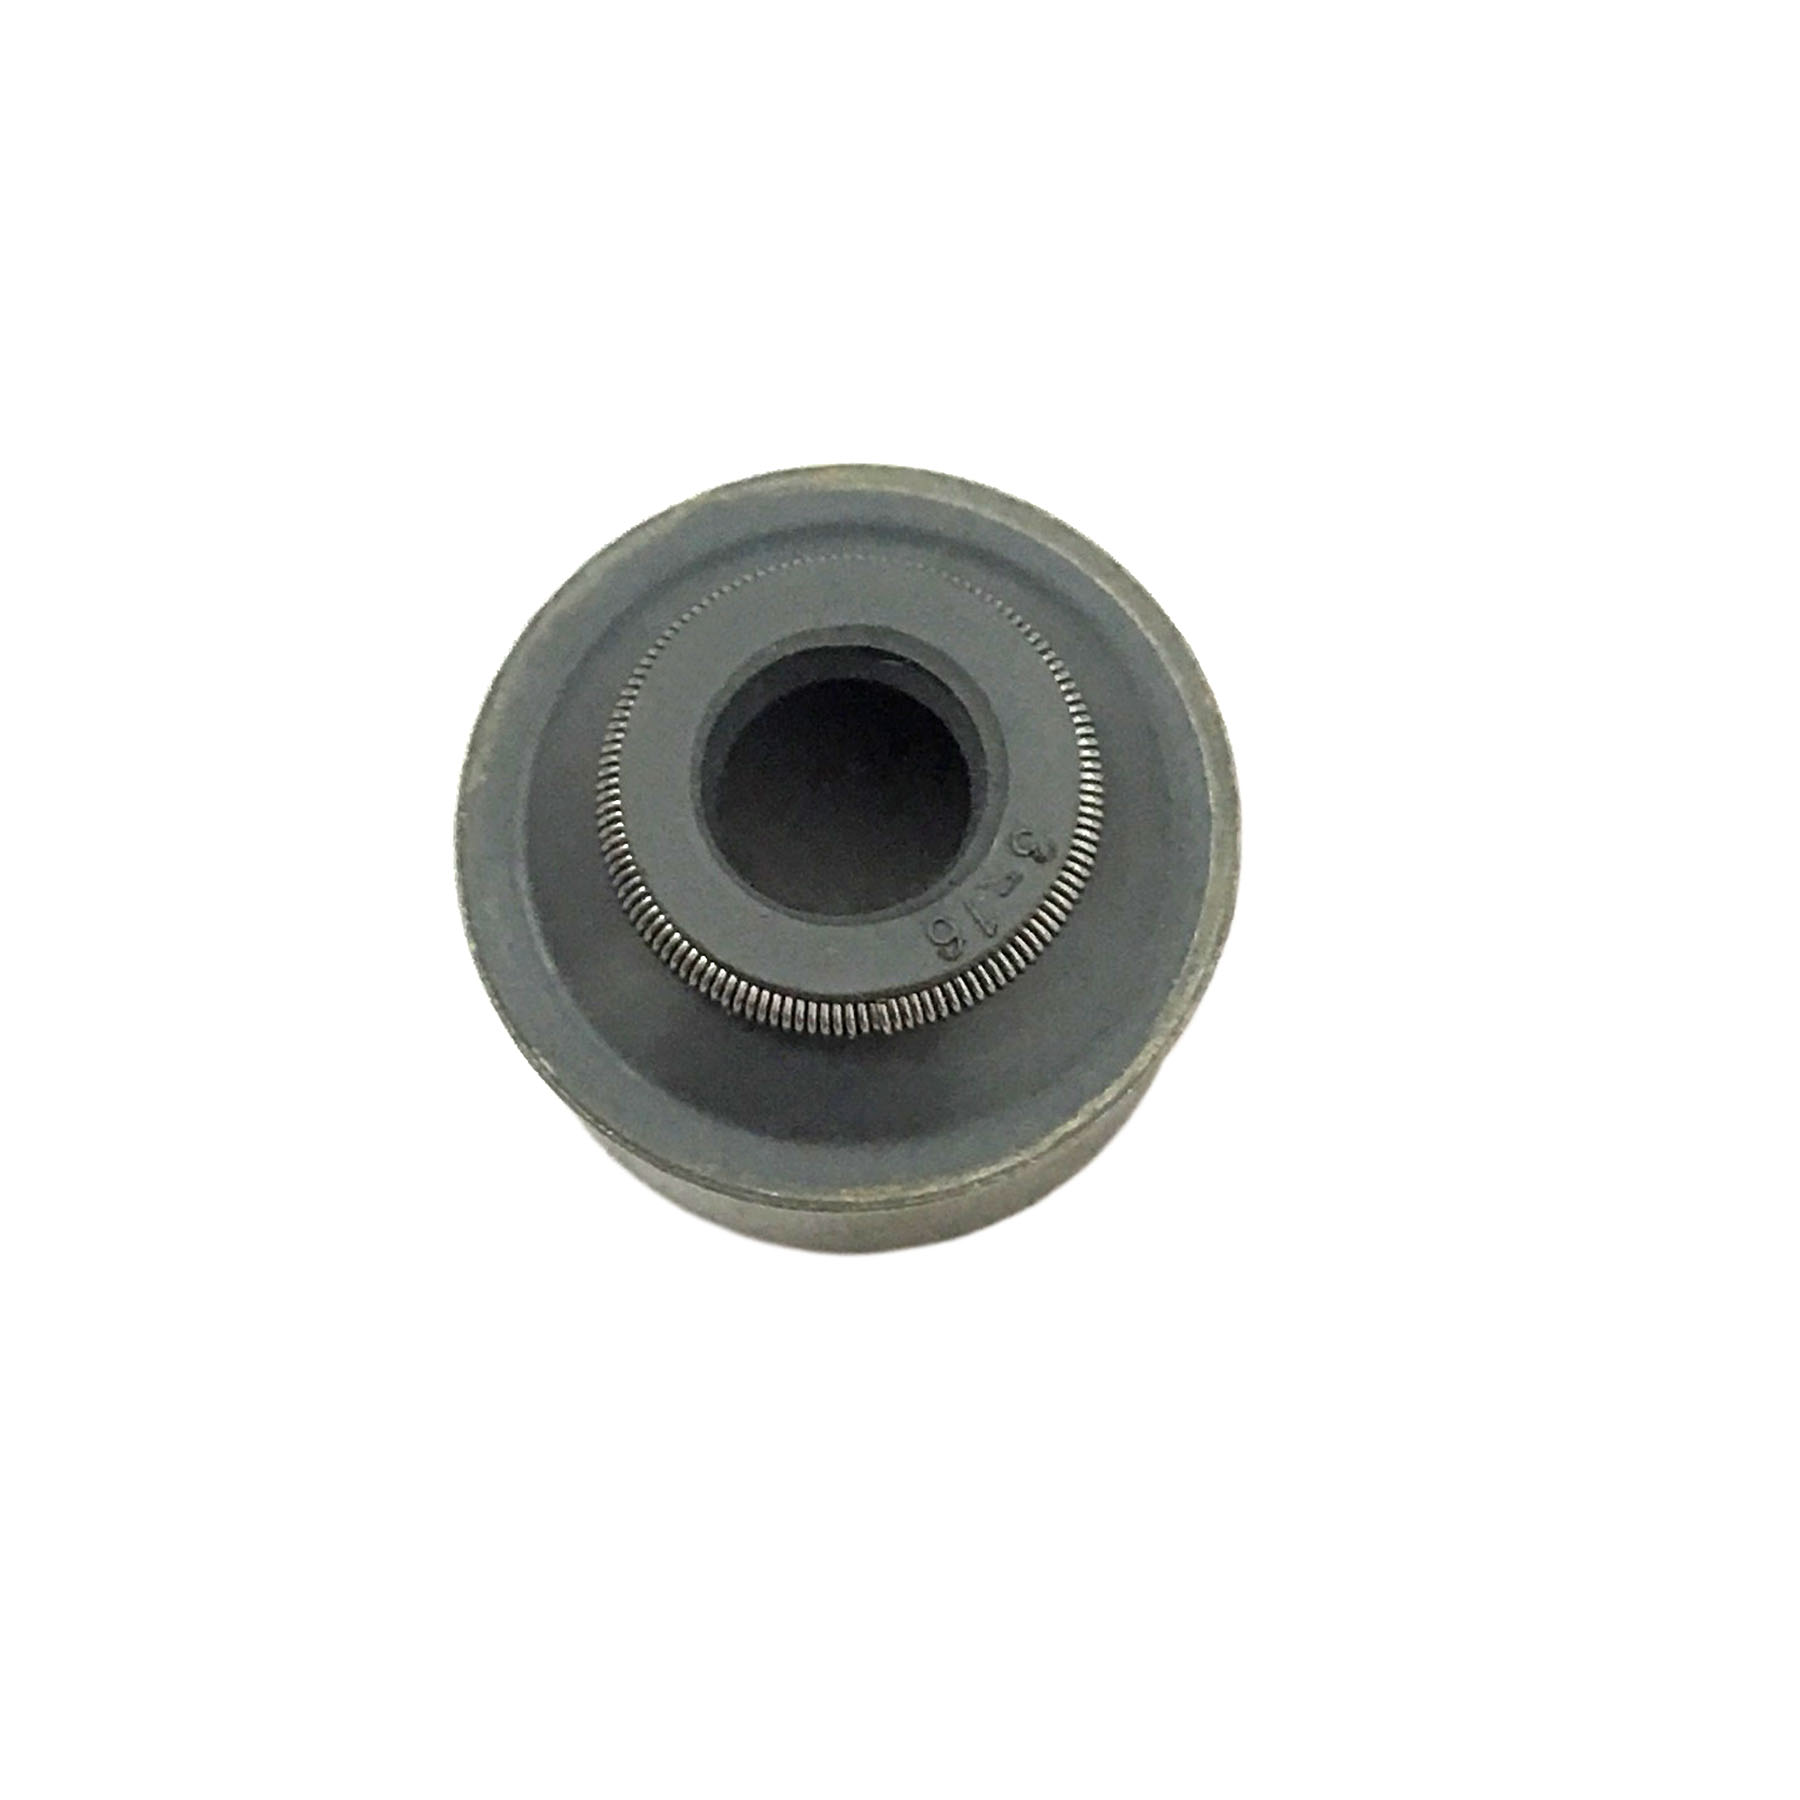 Valve Stem Oil Seal For OPEL/Chevrolet/Daewoo OEM 90215296 Size 6*10.5*10